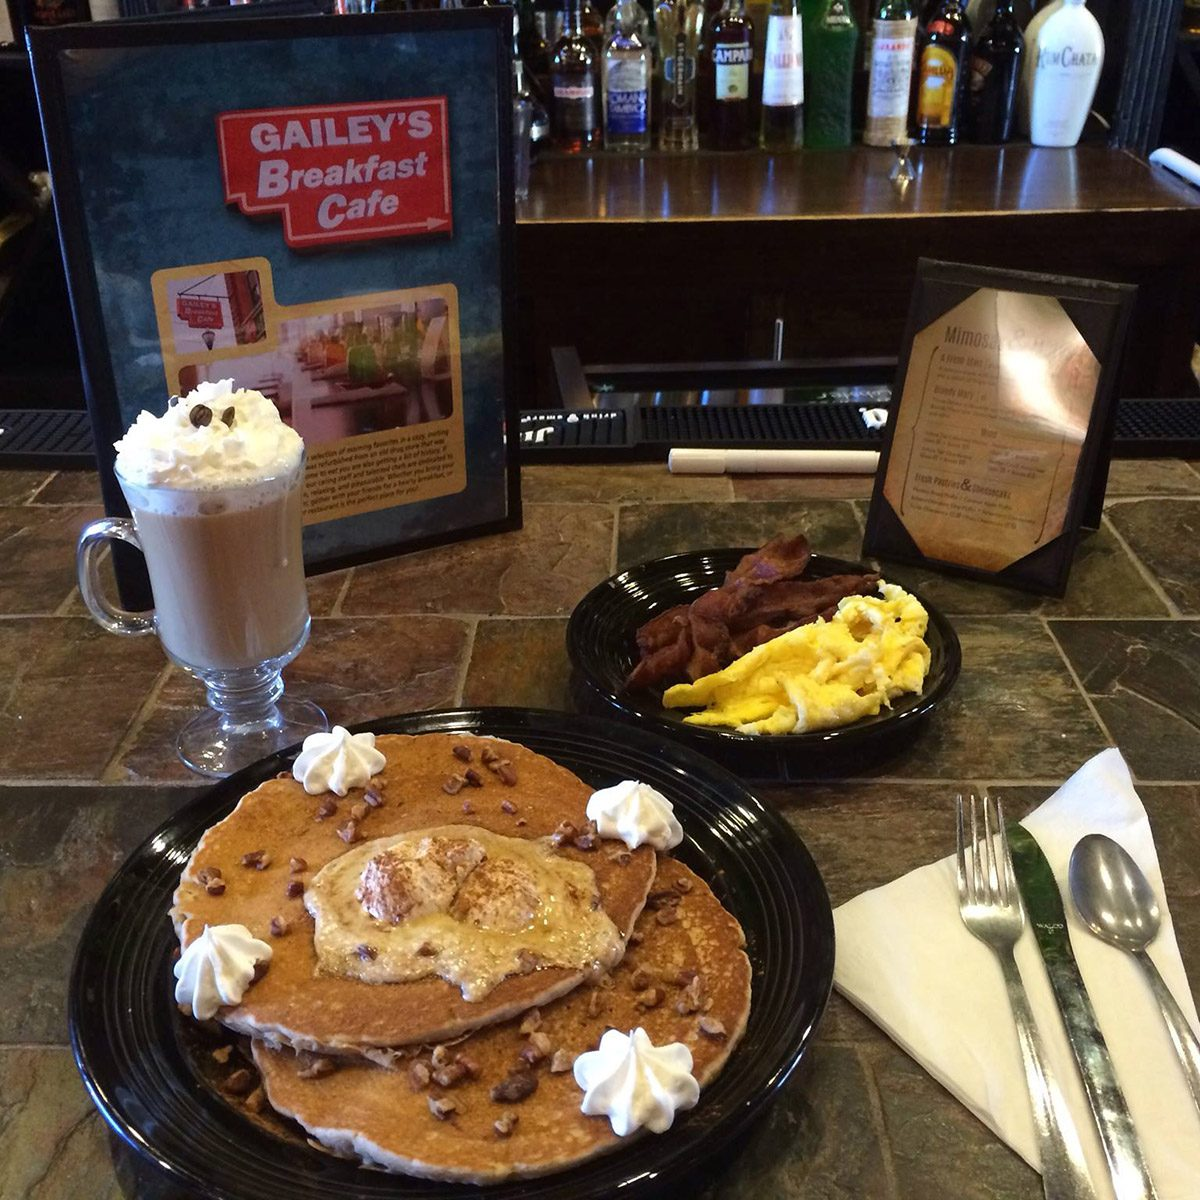 Gailey's Breakfast Cafe, Springfield pancakes